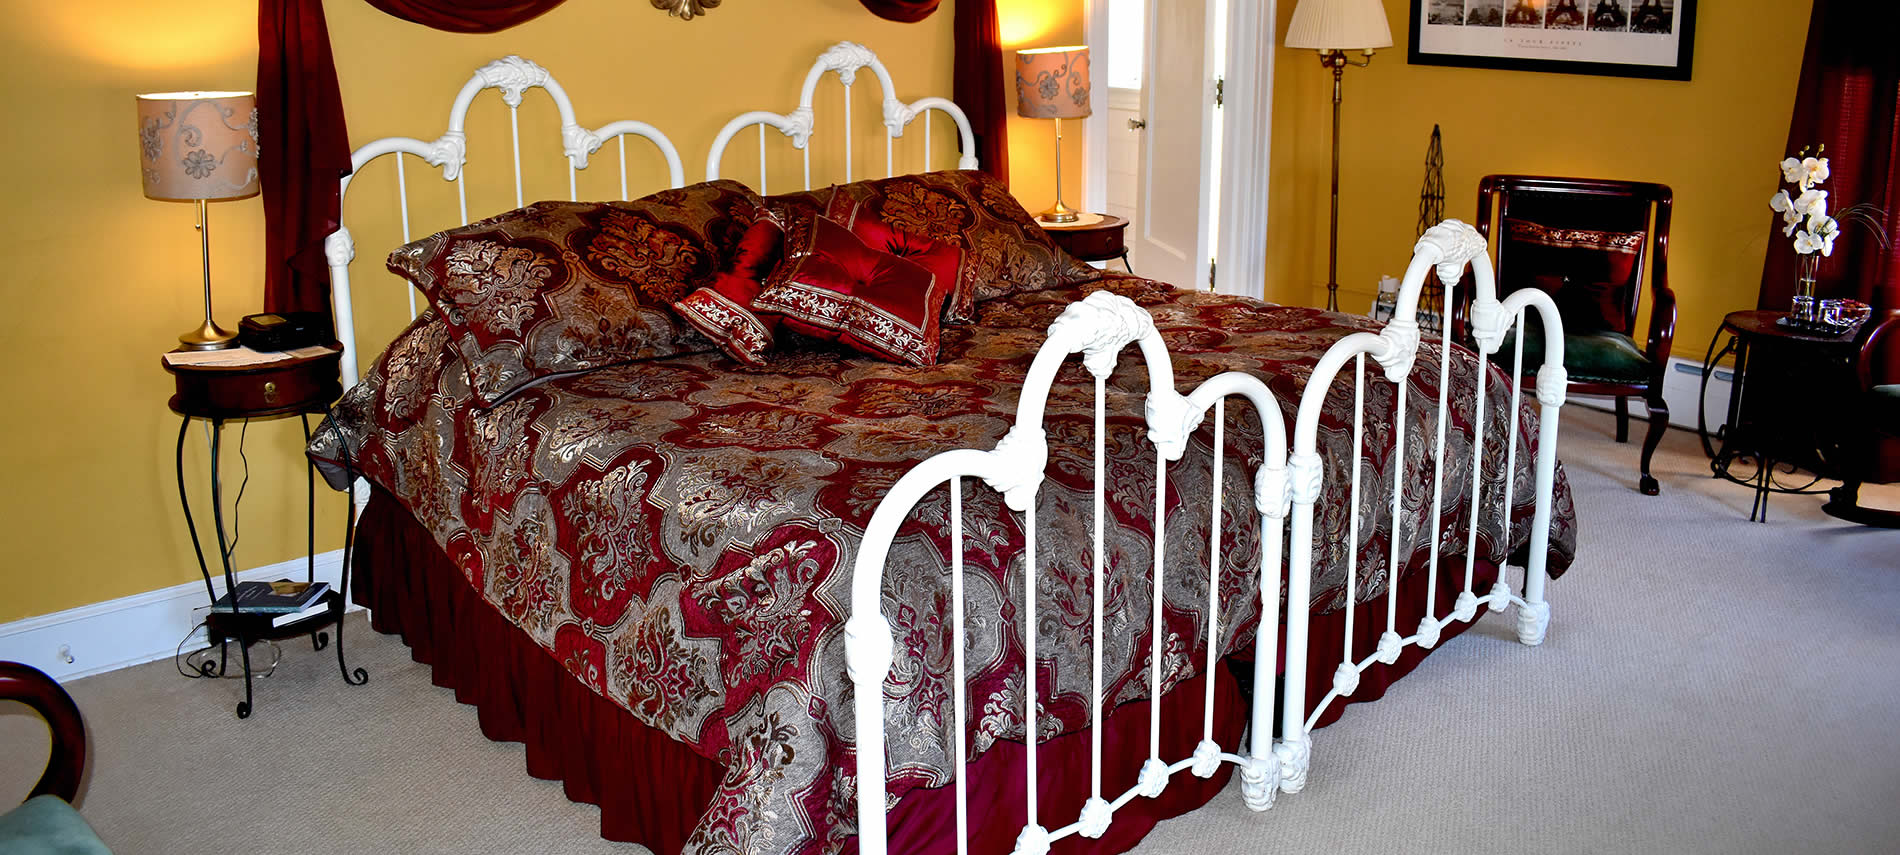 Burgundy and gold bedspread on white wrought iron bed with sitting area in background.